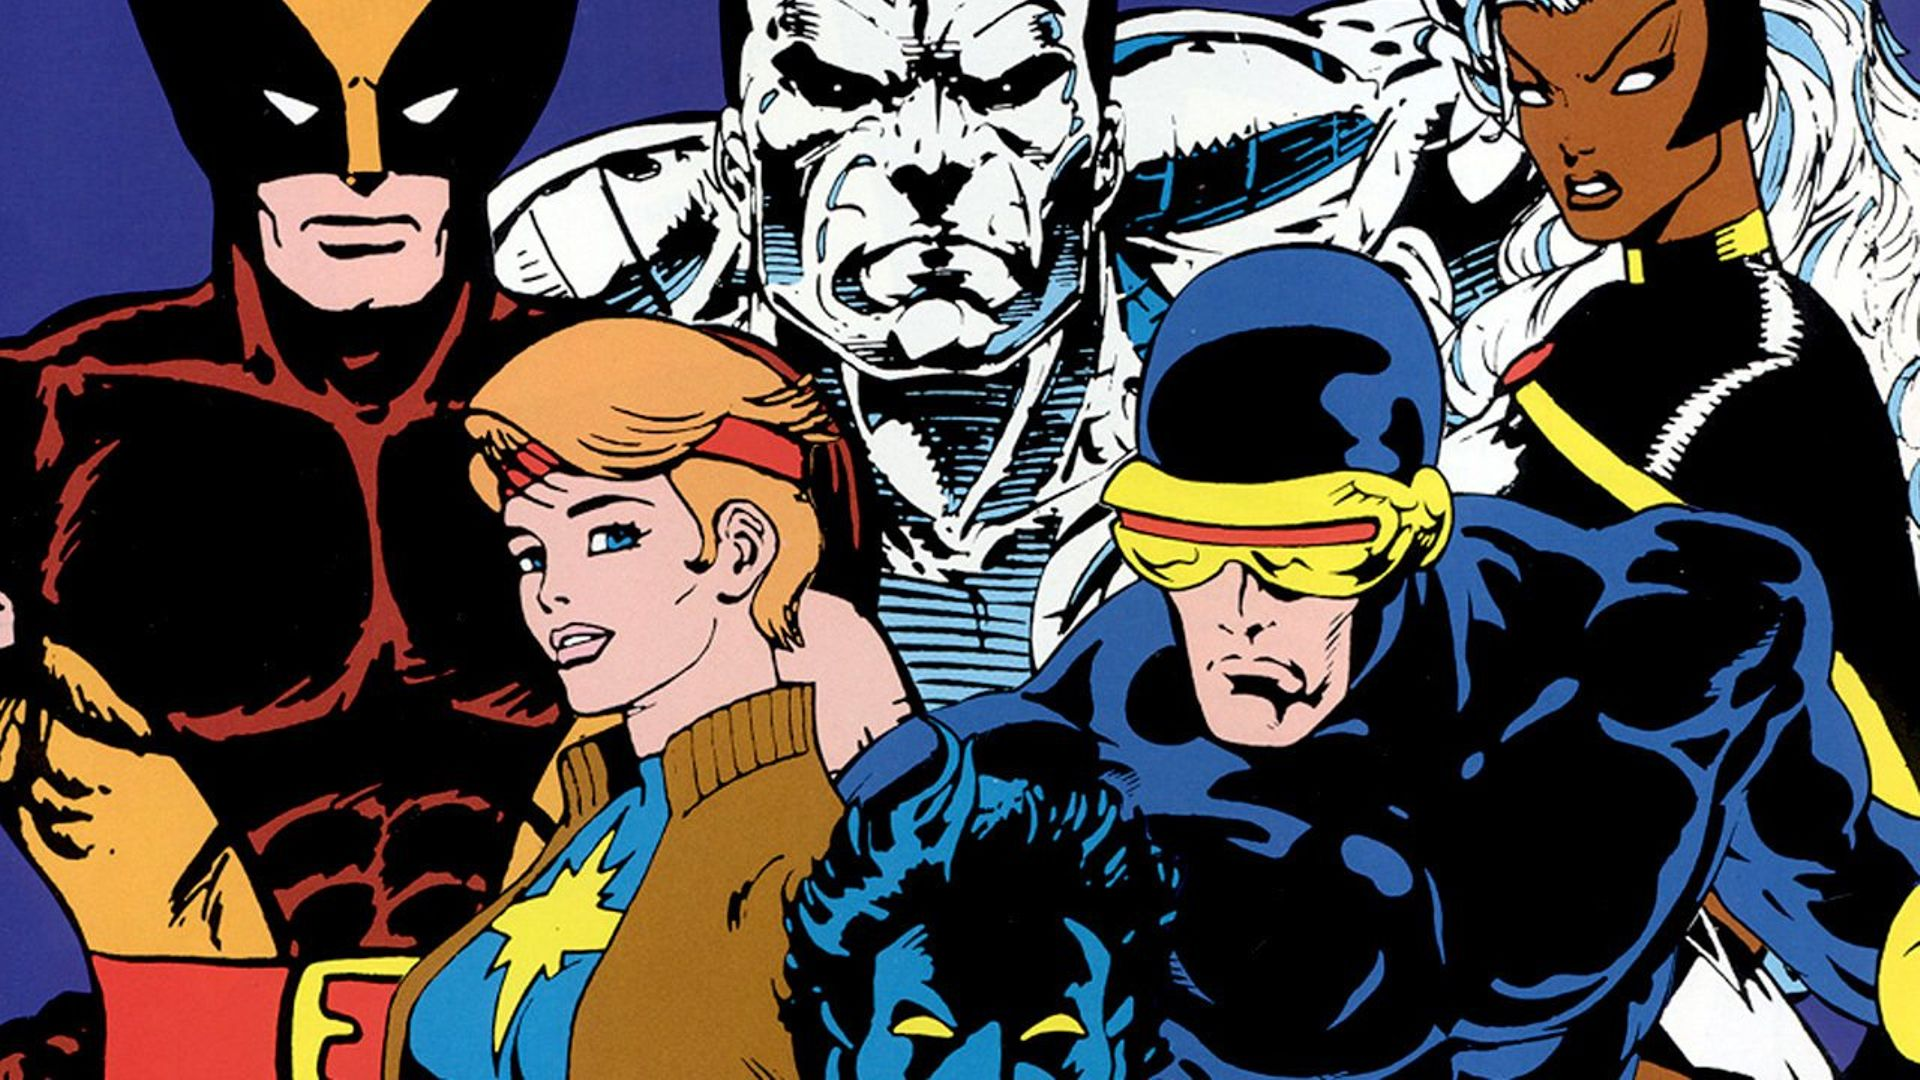 X Men Pryde Of The X Men 1989 Where To Watch It Streaming Online Reelgood